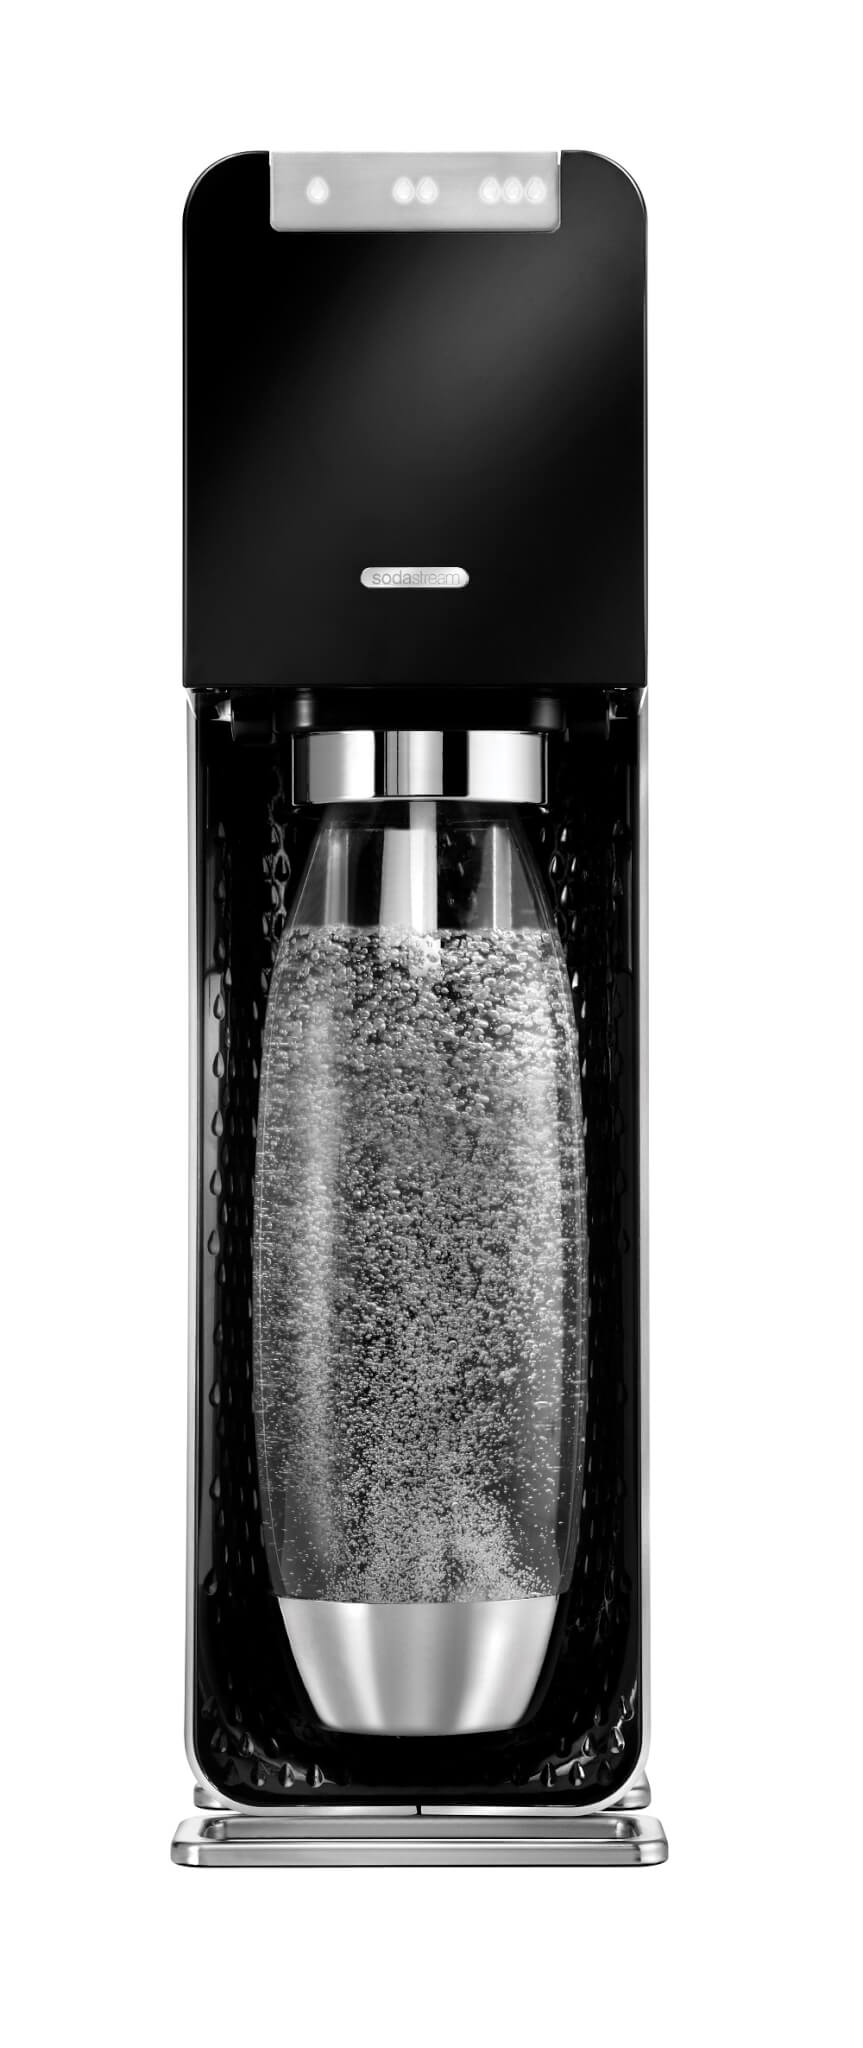 Win a SodaStream Power worth $249! lovefrommim.com Love from Mim SodaStream Power Review SodaStream Power Sparkling Water How to make sparkling water from tap water SodaStream Review Win a SodaStream